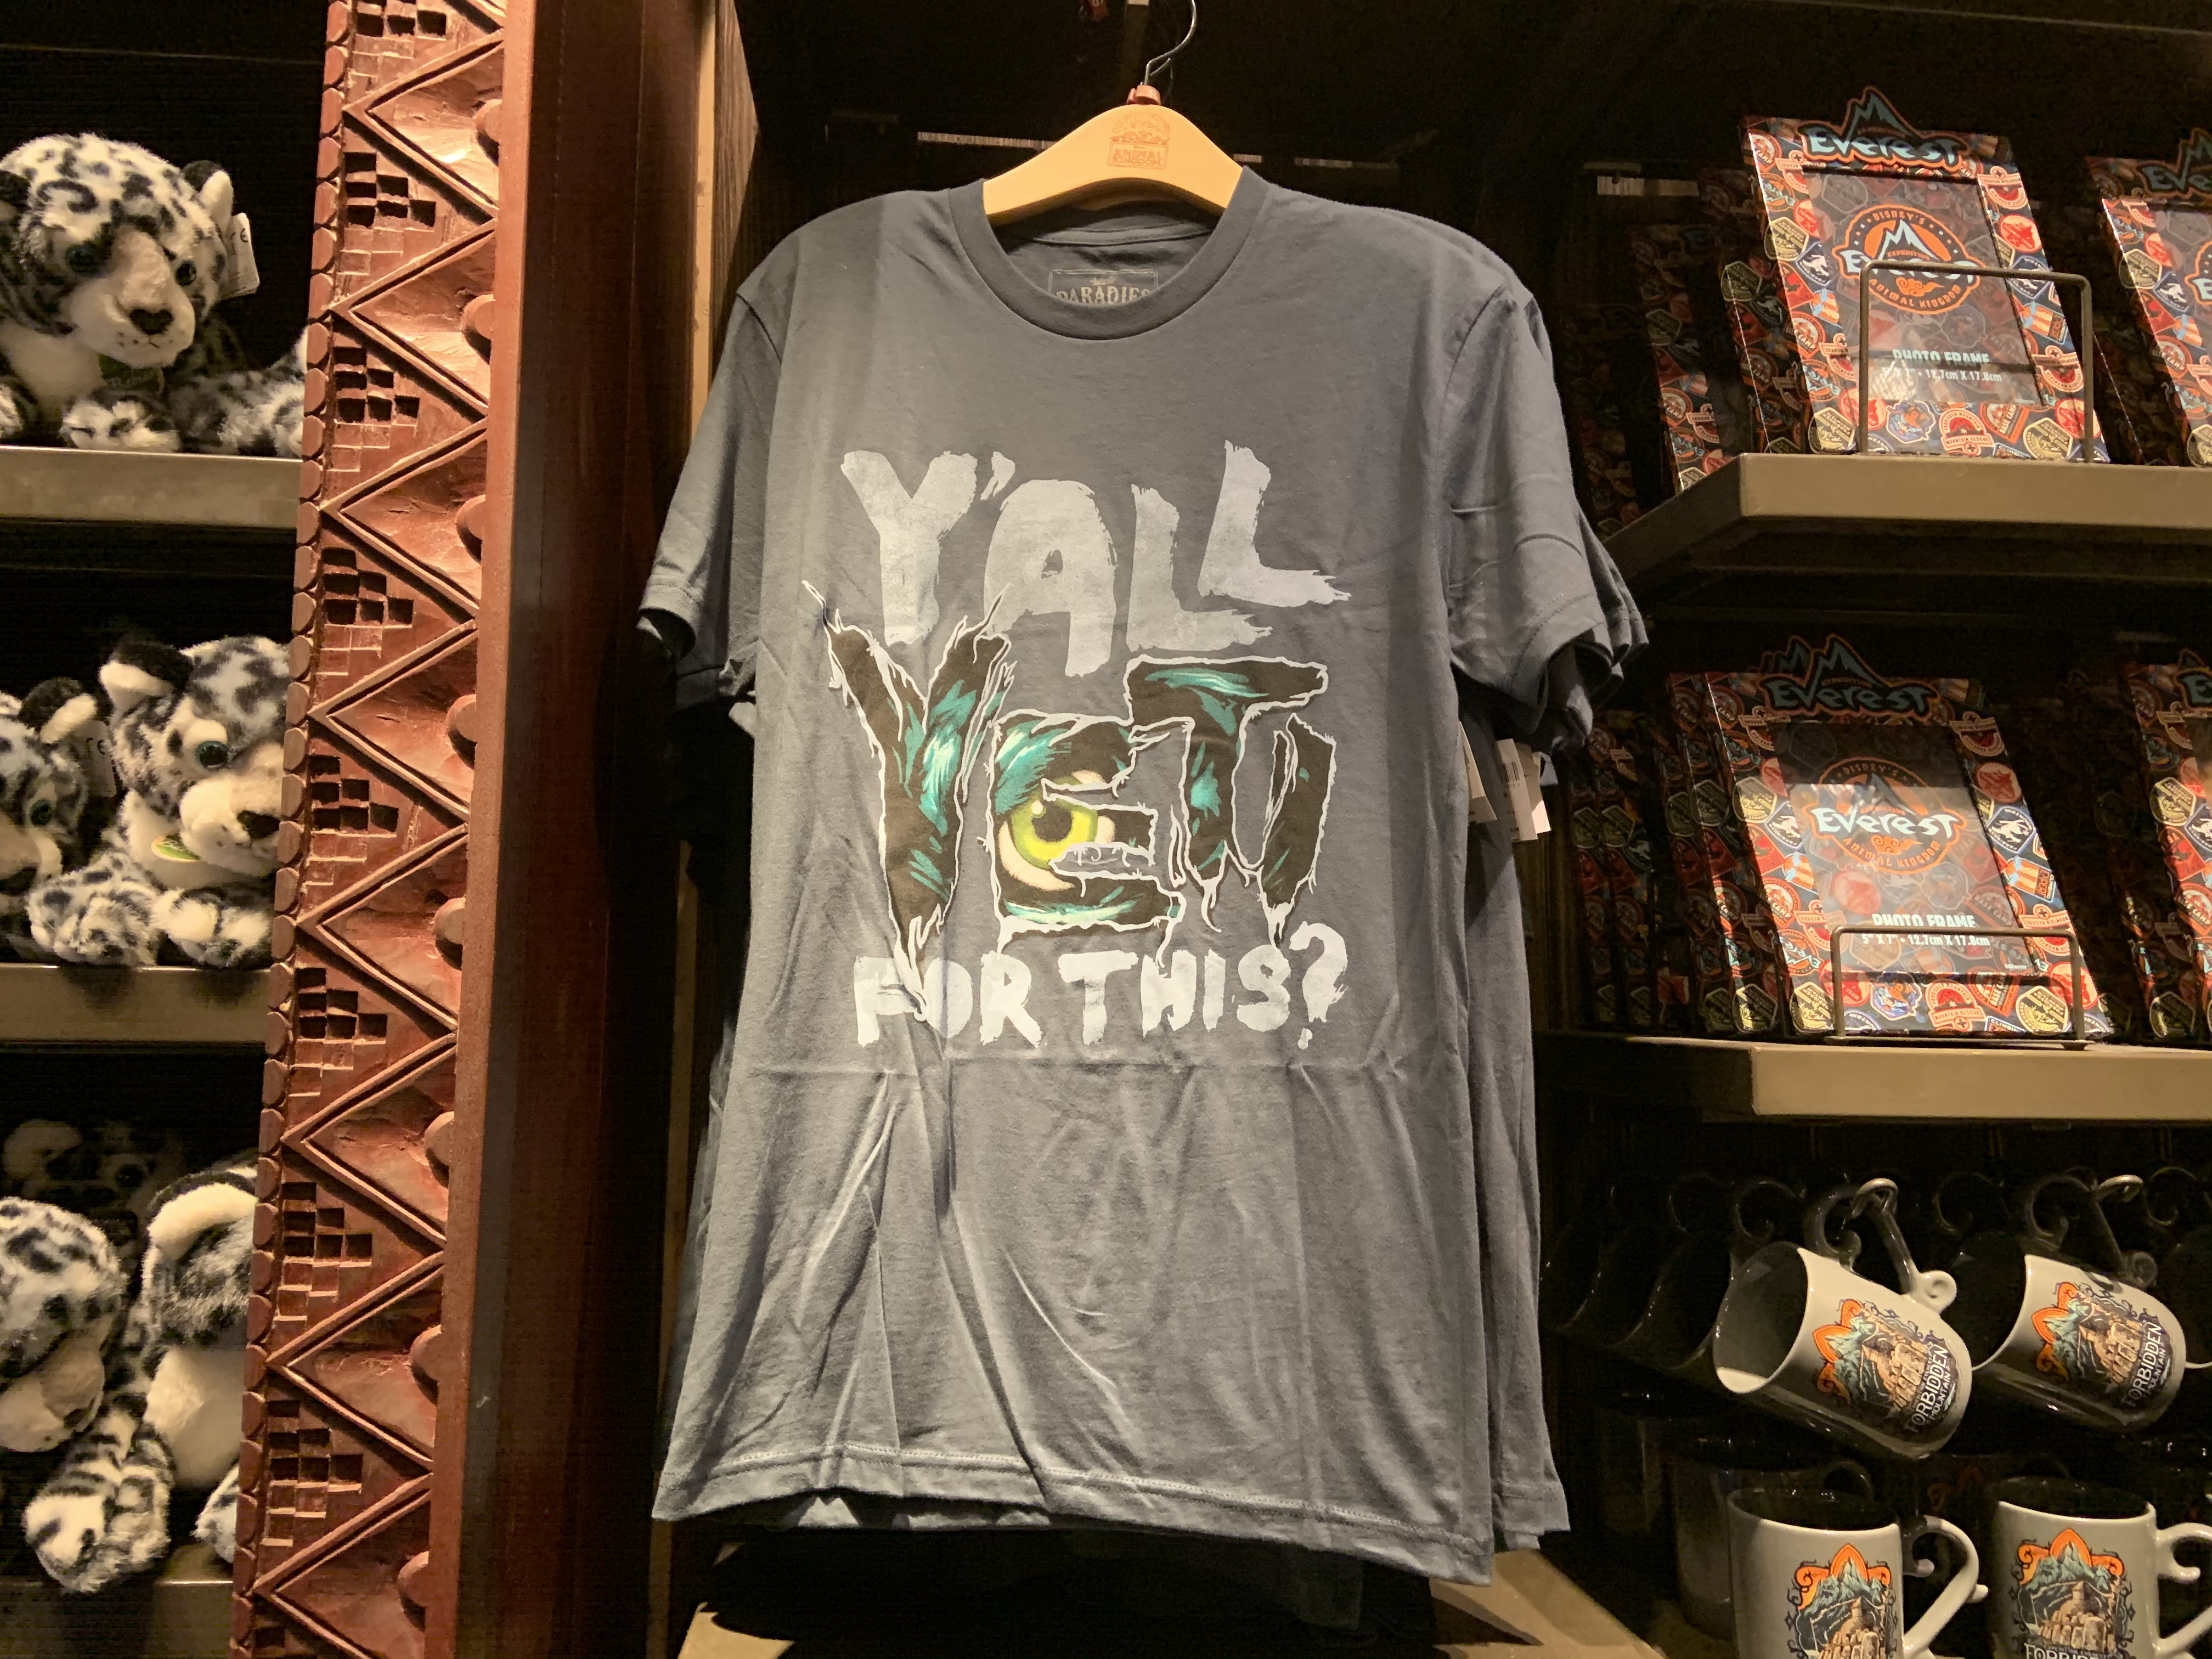 Y'all Yeti for This tee 12/7/`9